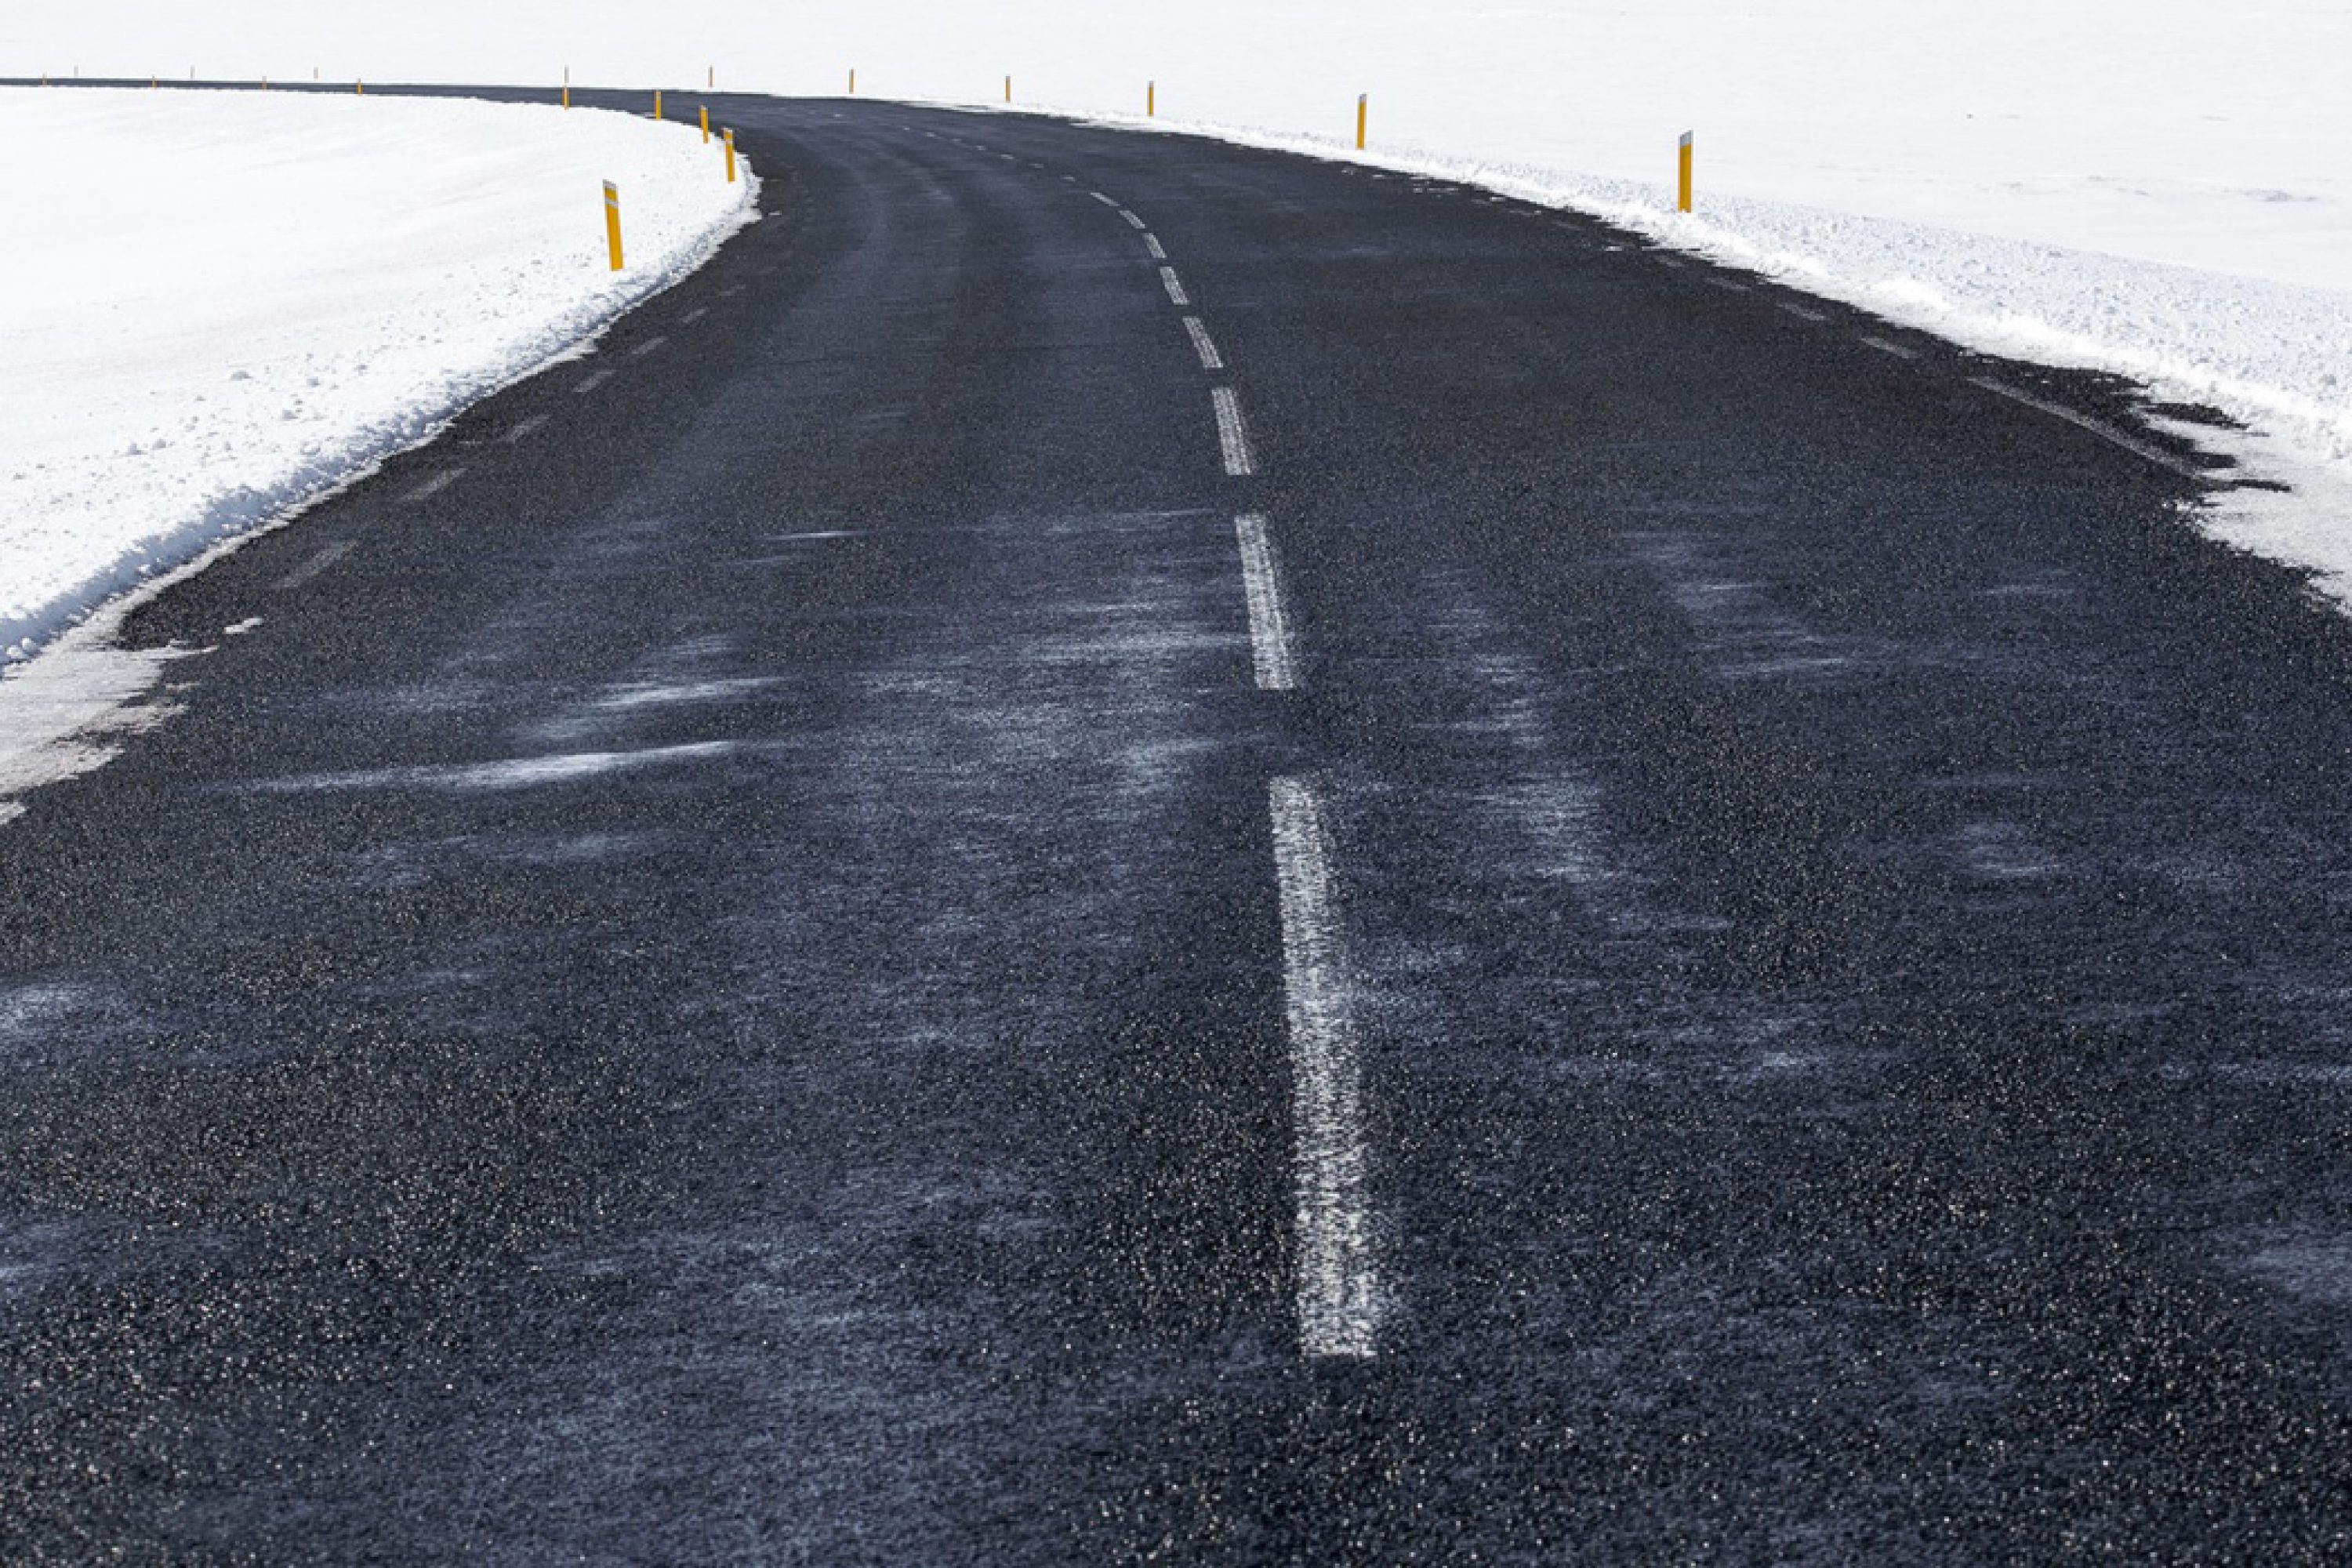 Icy roads are often more slippery